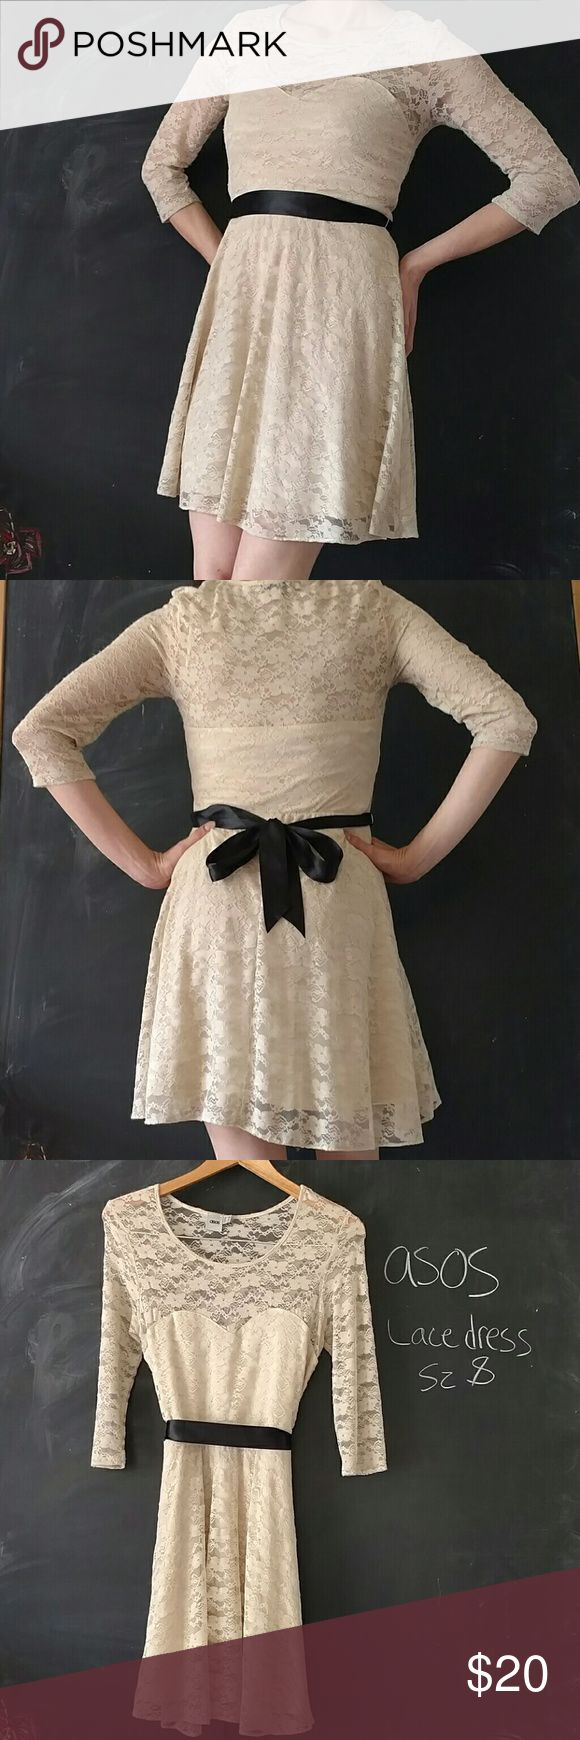 Asos Lace Dress Sz 8 Beige wirh Black Ribbon Belt Asos Lace Dress.  Sz 8 Bust 34-36 in. Length of skirt from top of waist to hem is 18.5 in.  Above knee. Waist 26-32 in. 3/4 sleeves.  Beige lace dress with stretch.  Good used condition with some signs of wear where lace is more fuzzy.  See last two pics.   Black ribbon tie belt.  No stains or tears.  Still very adorable dress.  Lace is comfortable and not itchy.  Lined.  Smoke and Pet free environment.  No trades. ASOS Dresses